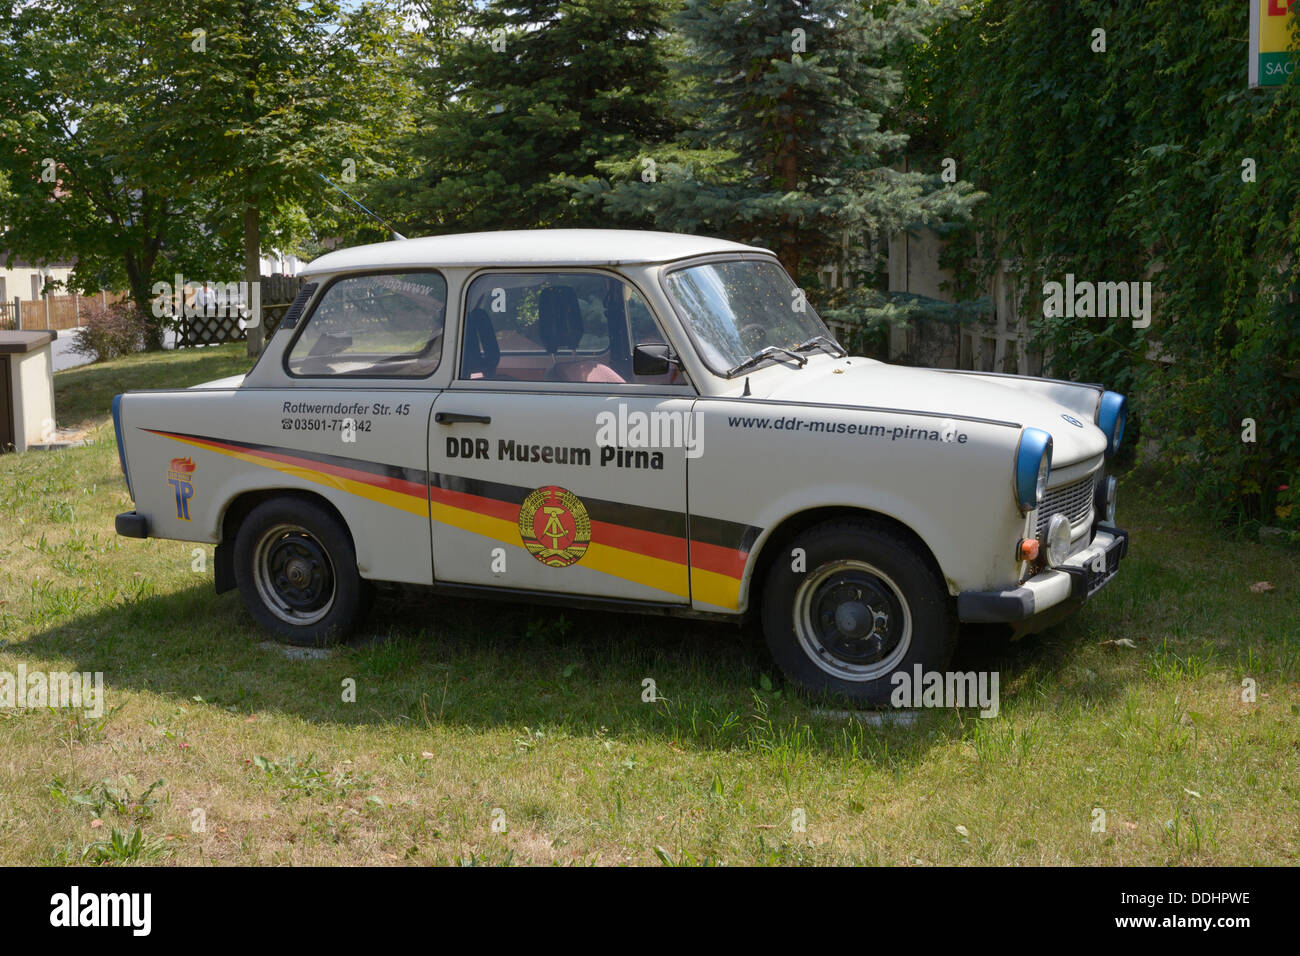 Trabant 601, plastered with advertisements for the DDR Museum Pirna - Stock Image